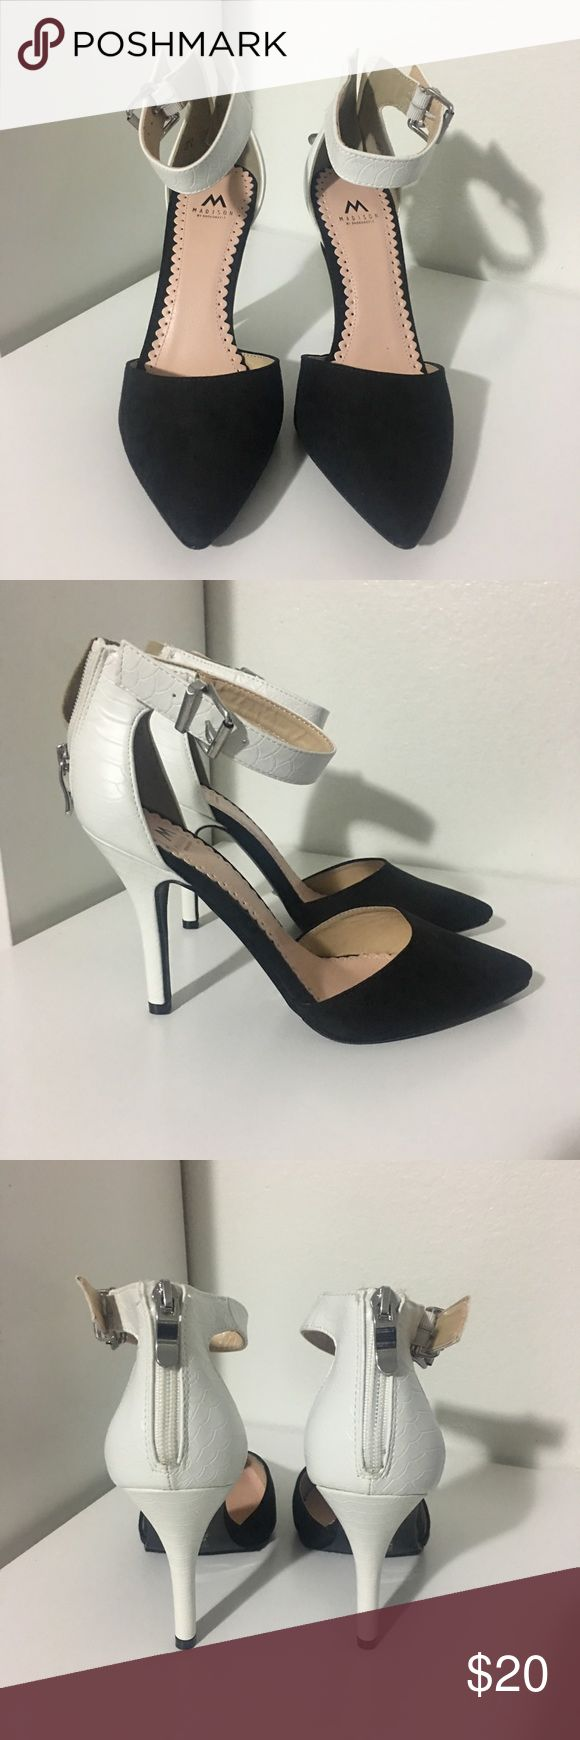 Heels Black and white heels, never been used but shoe box not included, ShoeDazzle bag included. Shoe Dazzle Shoes Heels